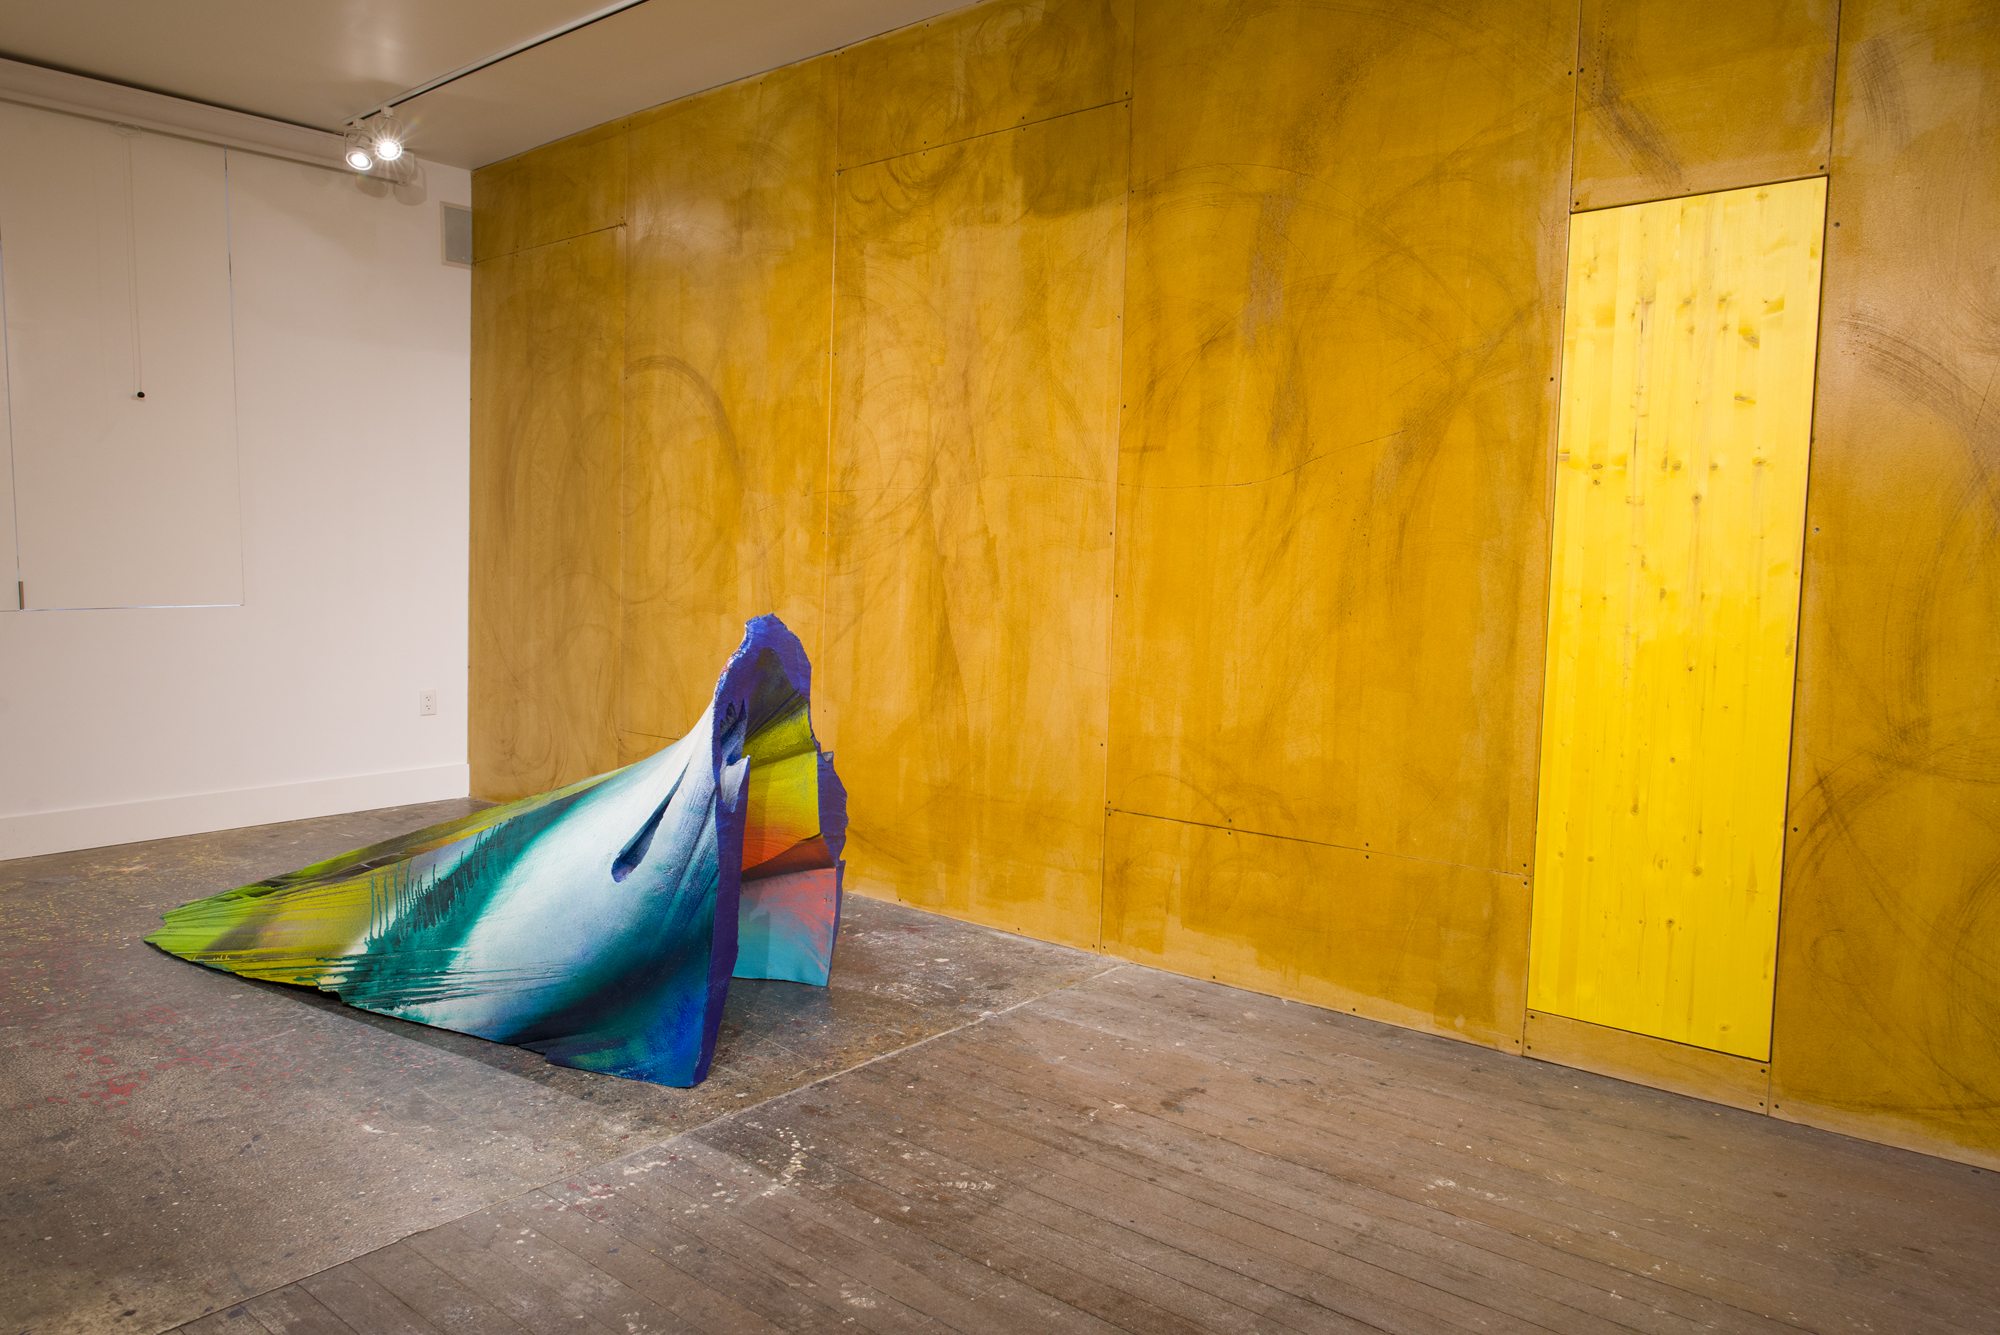 David Ireland,  Contadina , 1985. Polyurethane on drywall. Remade for the exhibition  Amulet or He calls it chaos , 2019; Photo: Preston/Kalogiros; Courtesy of The 500 Capp Street Foundation.